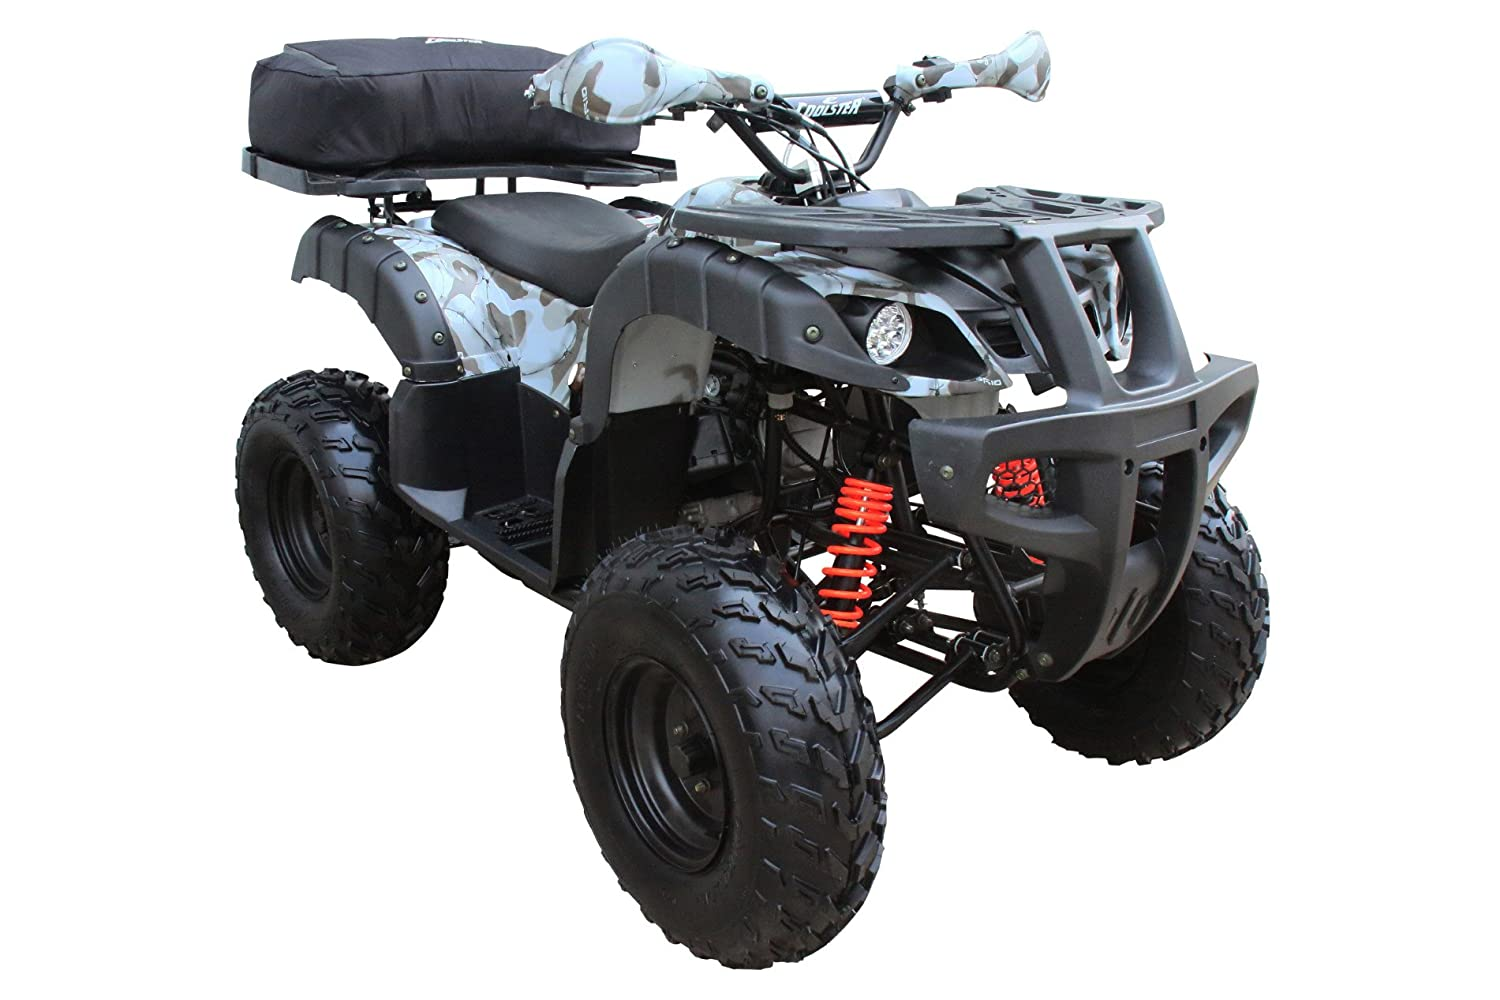 Amazon.com : Coolster 3150DX-2 150cc Adult ATV Army Black : Sports &  Outdoors